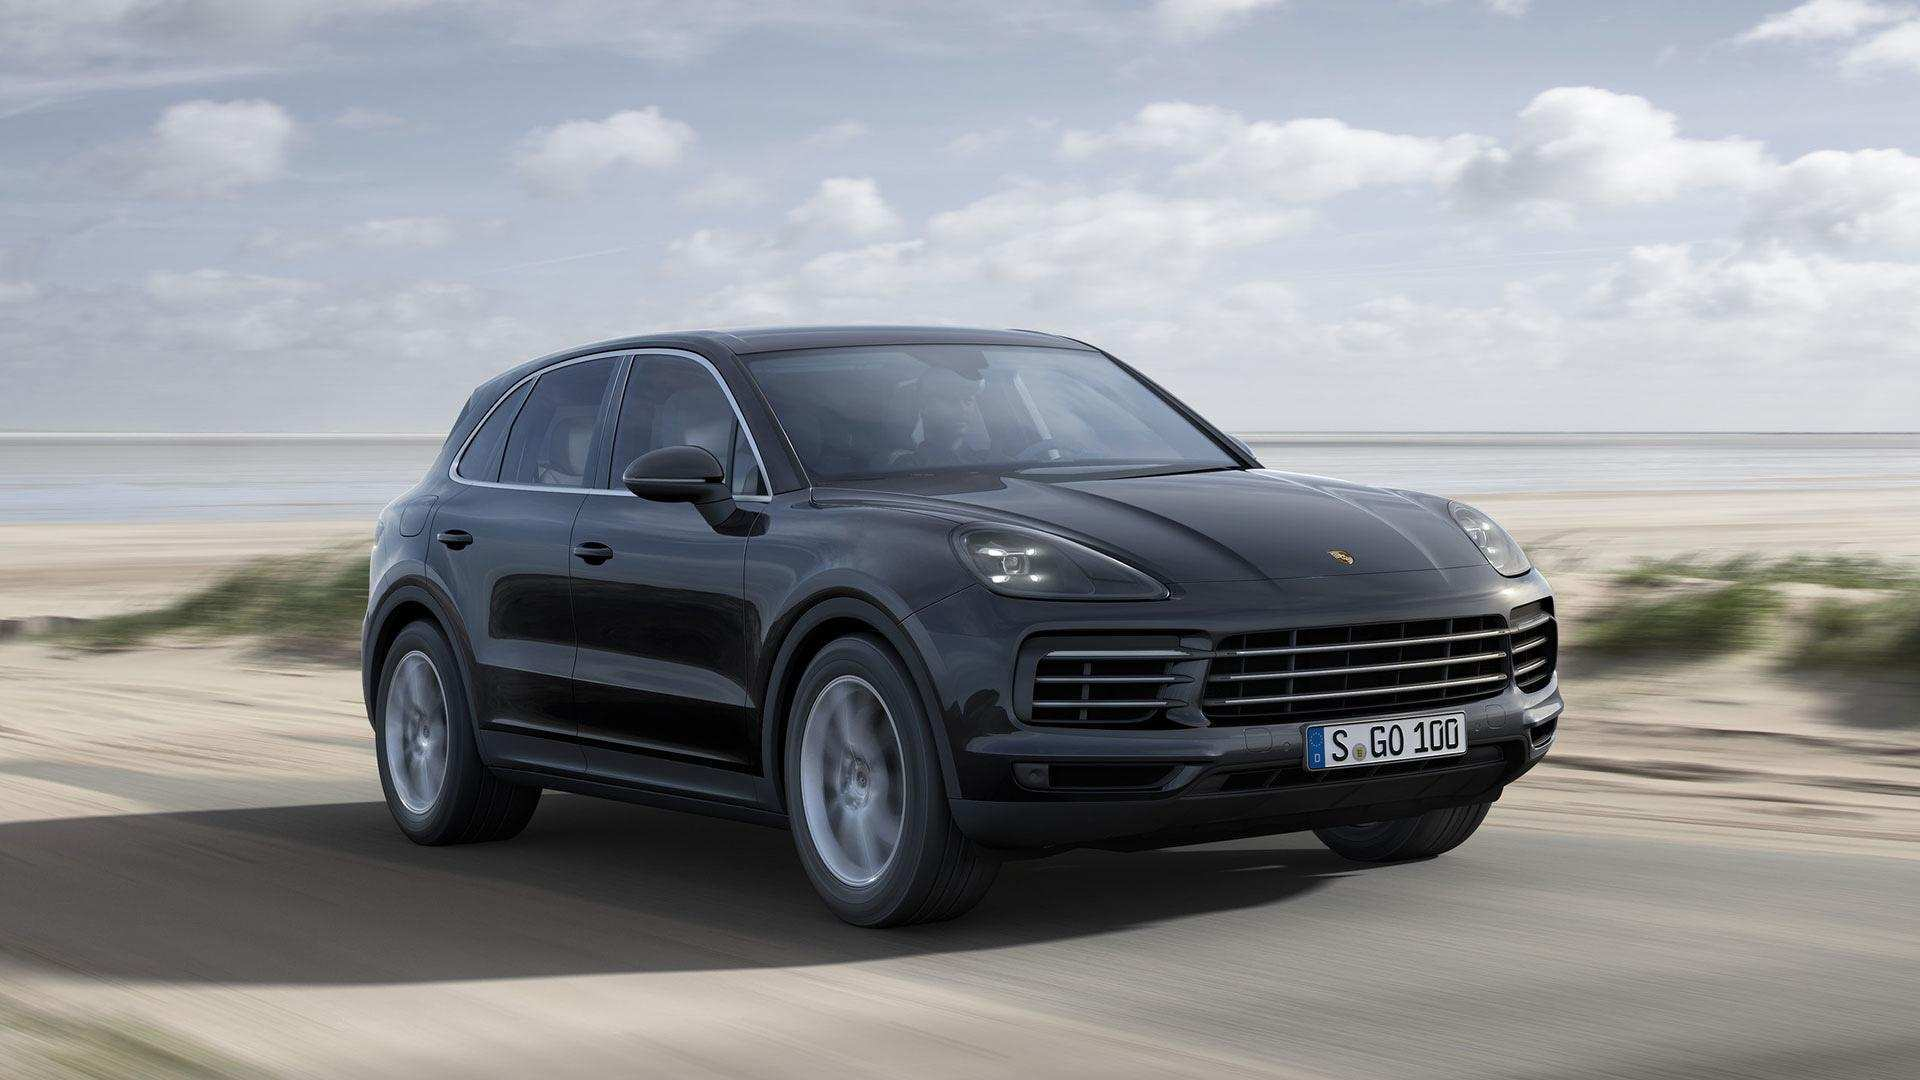 40 All New 2019 Porsche Cayenne Model